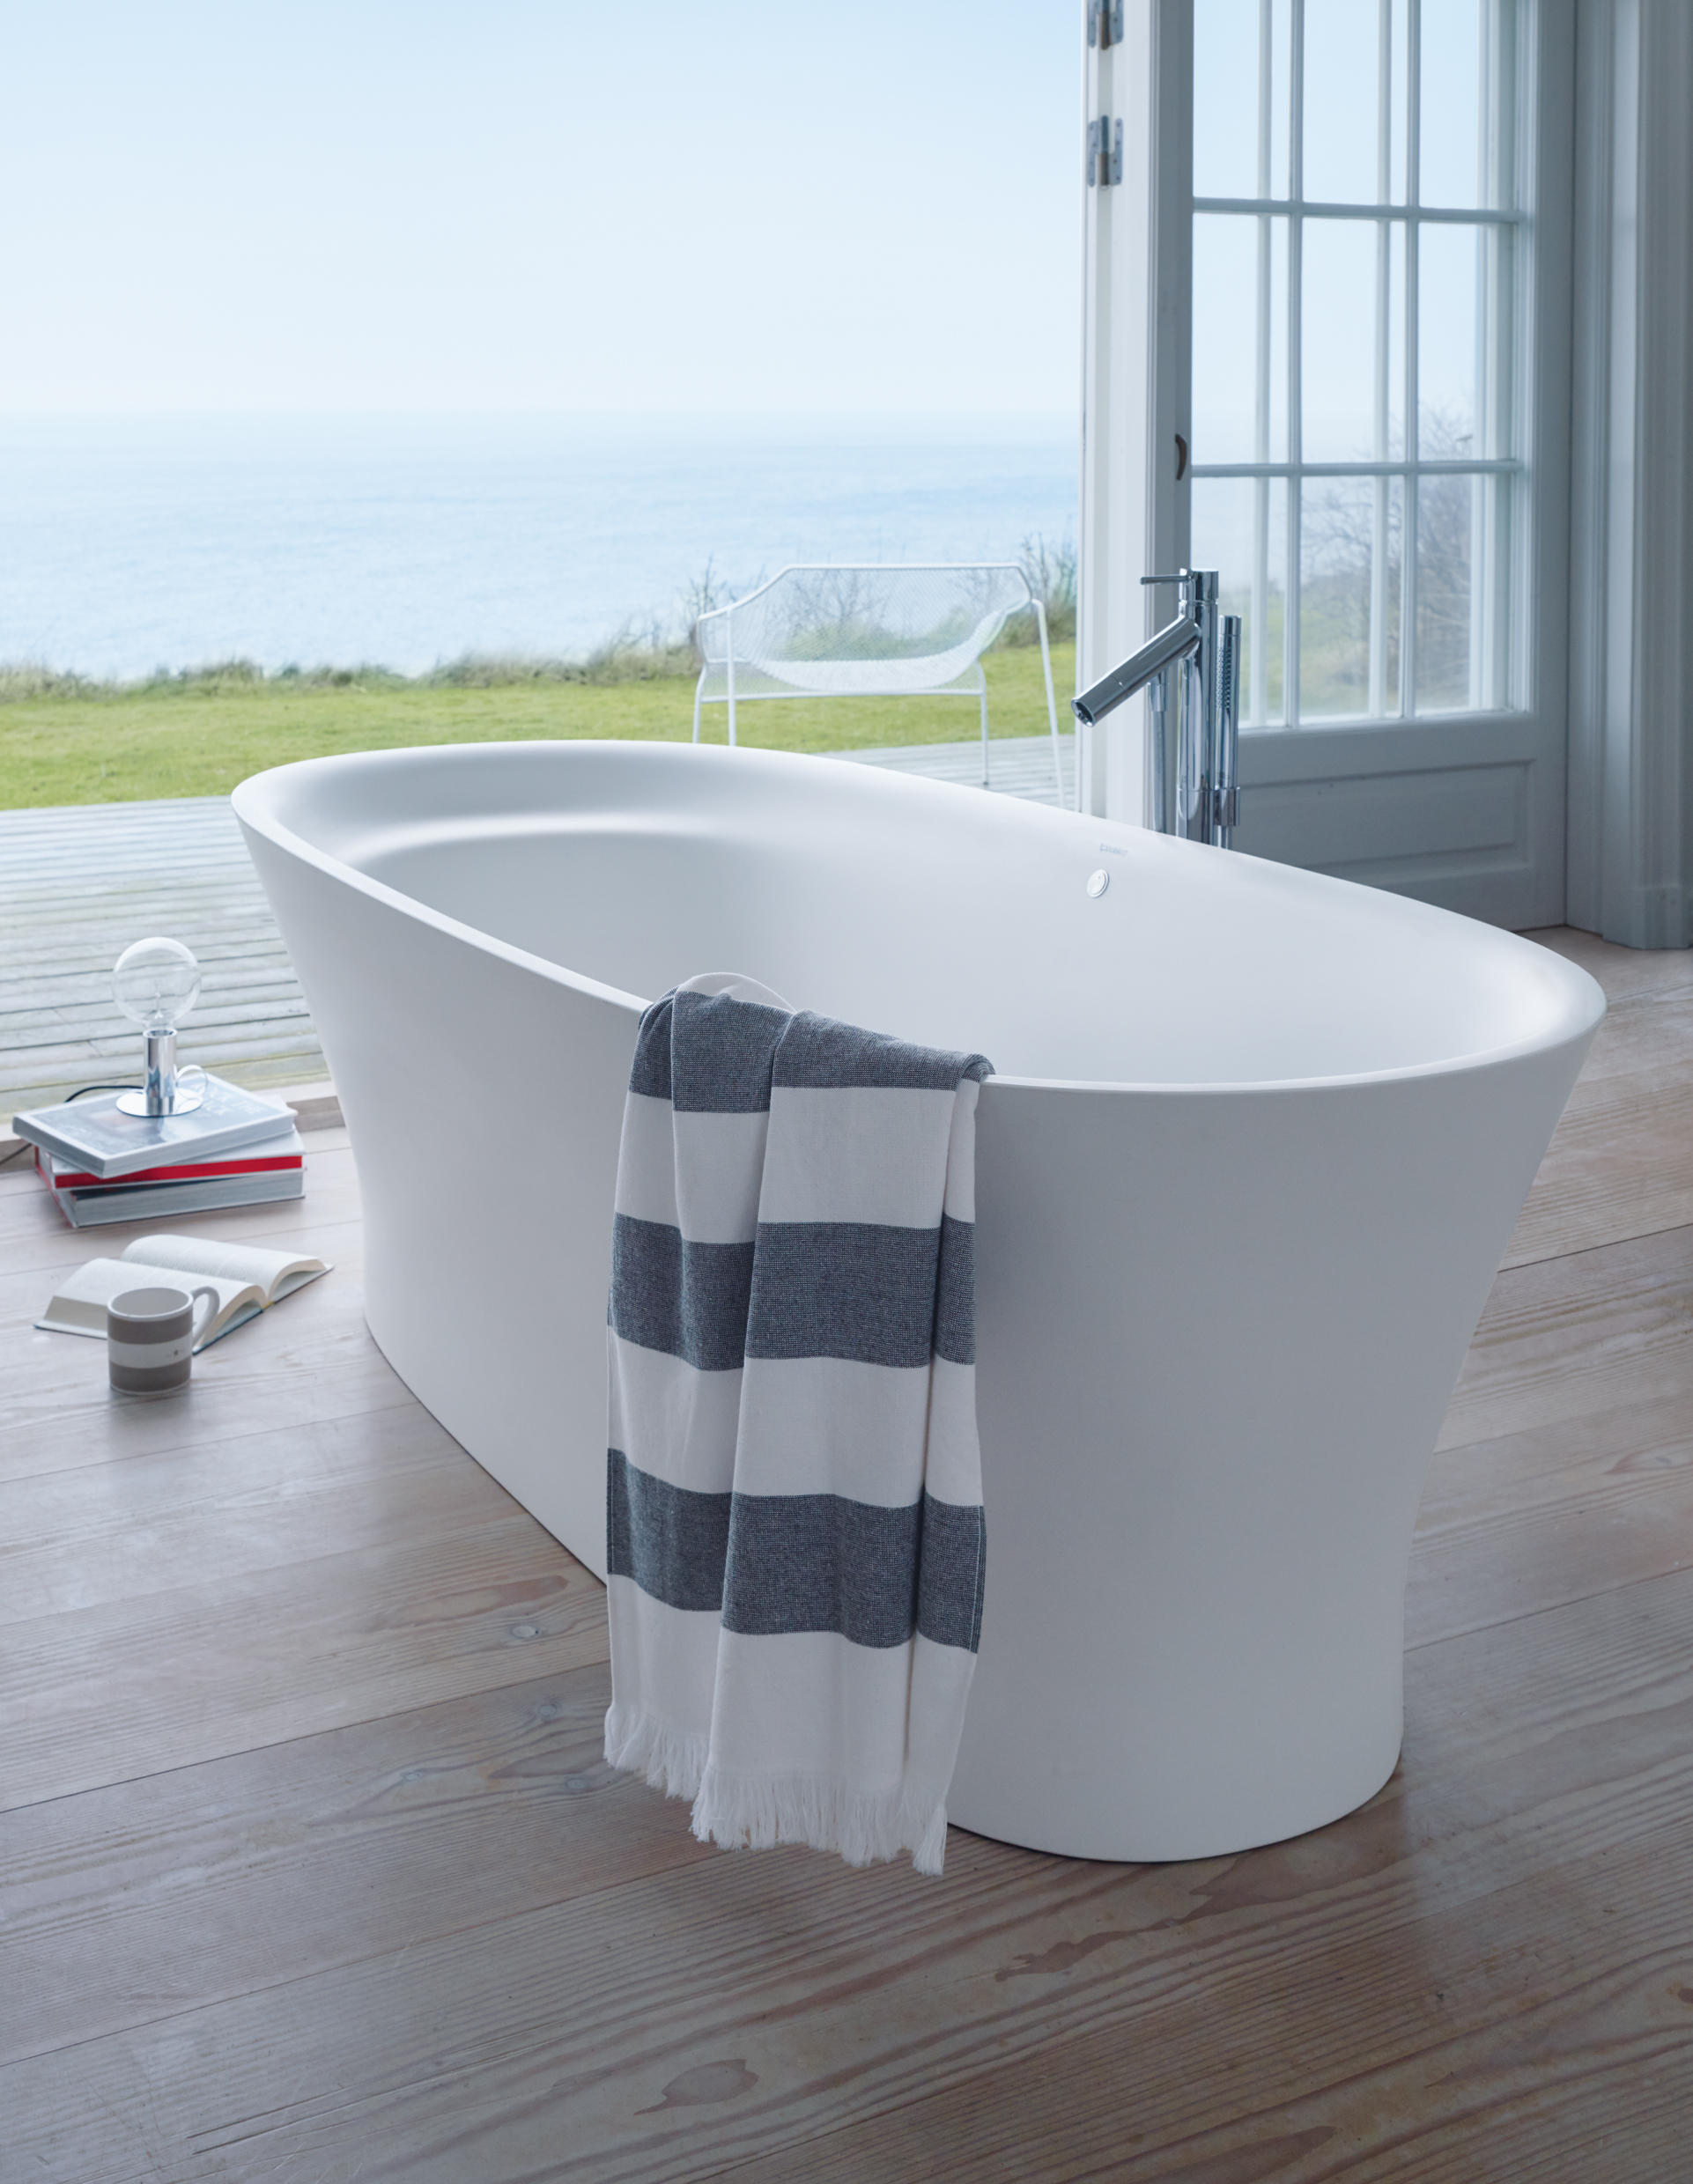 BATHTUBS CERAMIC - High quality designer BATHTUBS CERAMIC | Architonic